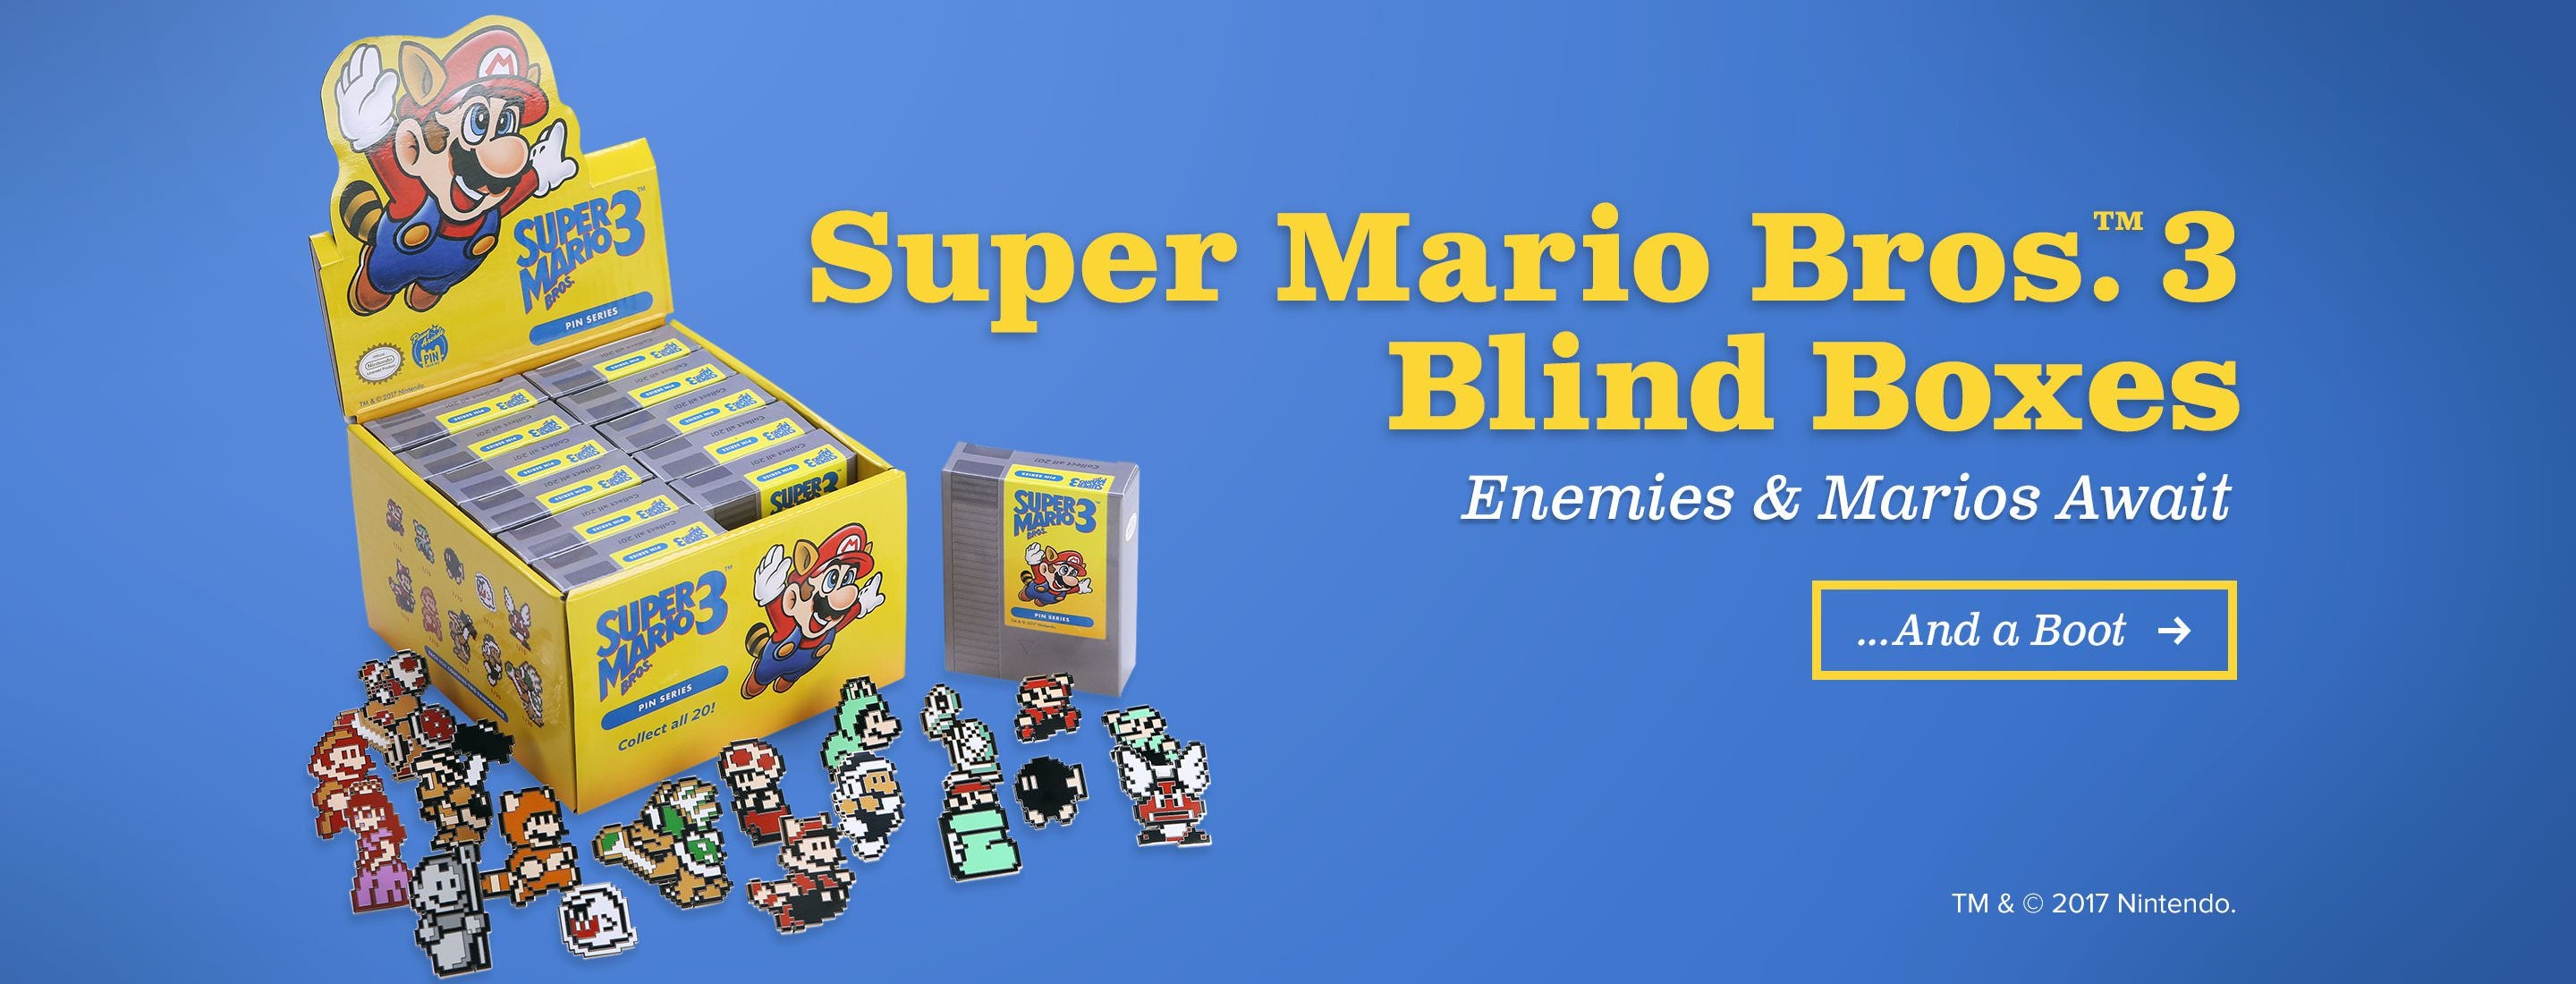 Super Mario Bros. 3 Blind Box. Enemies and Marios Await. ...And a Boot.